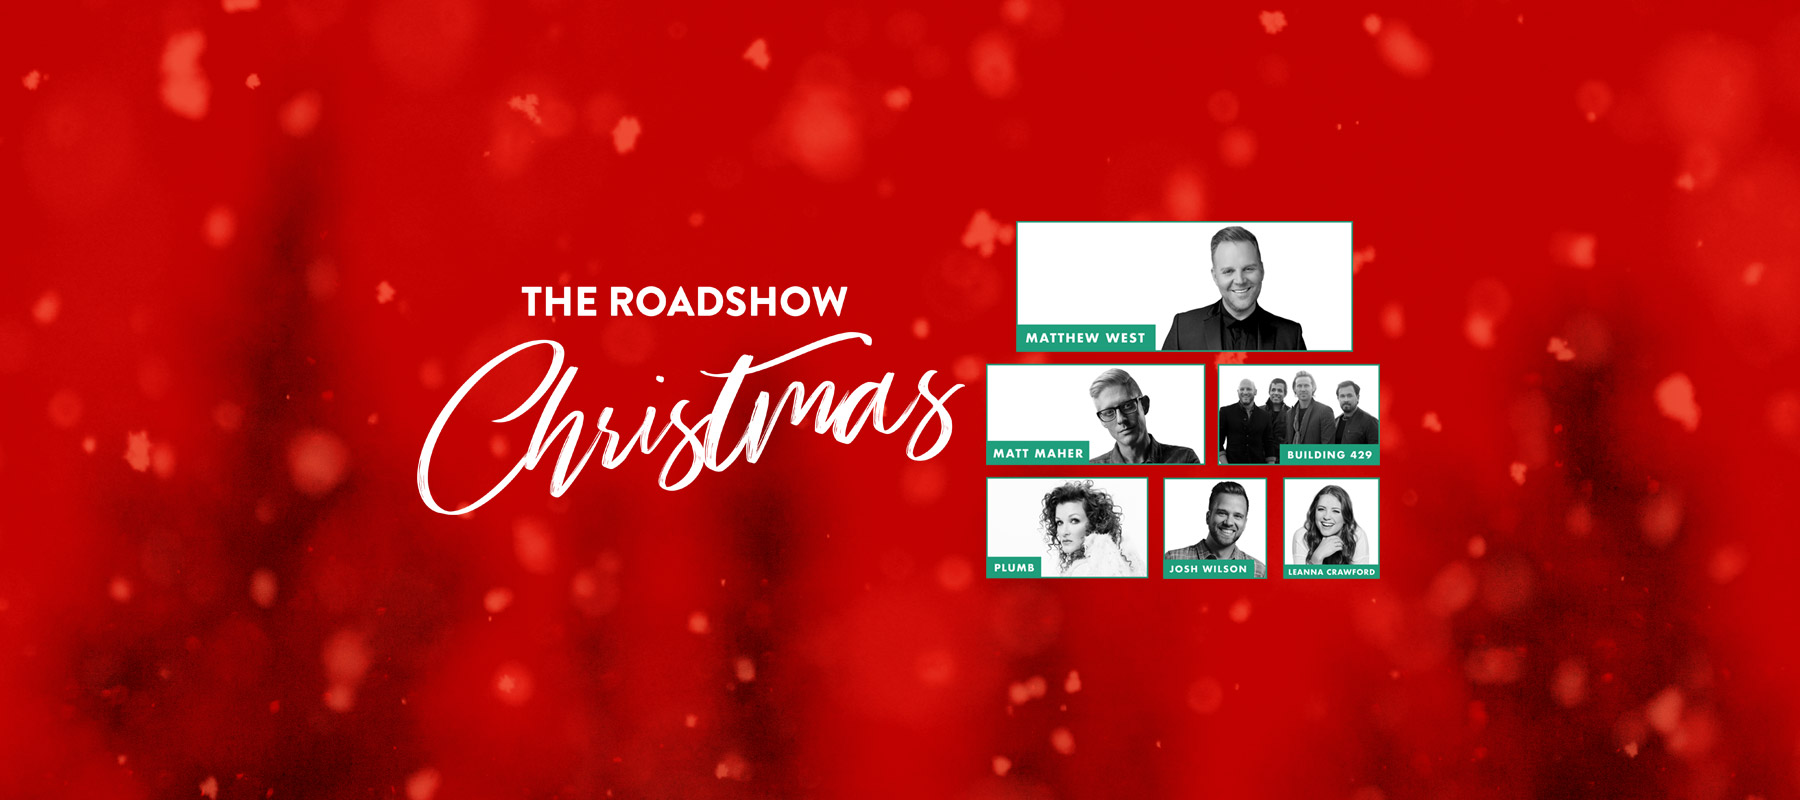 The Roadshow Christmas 2018 logo